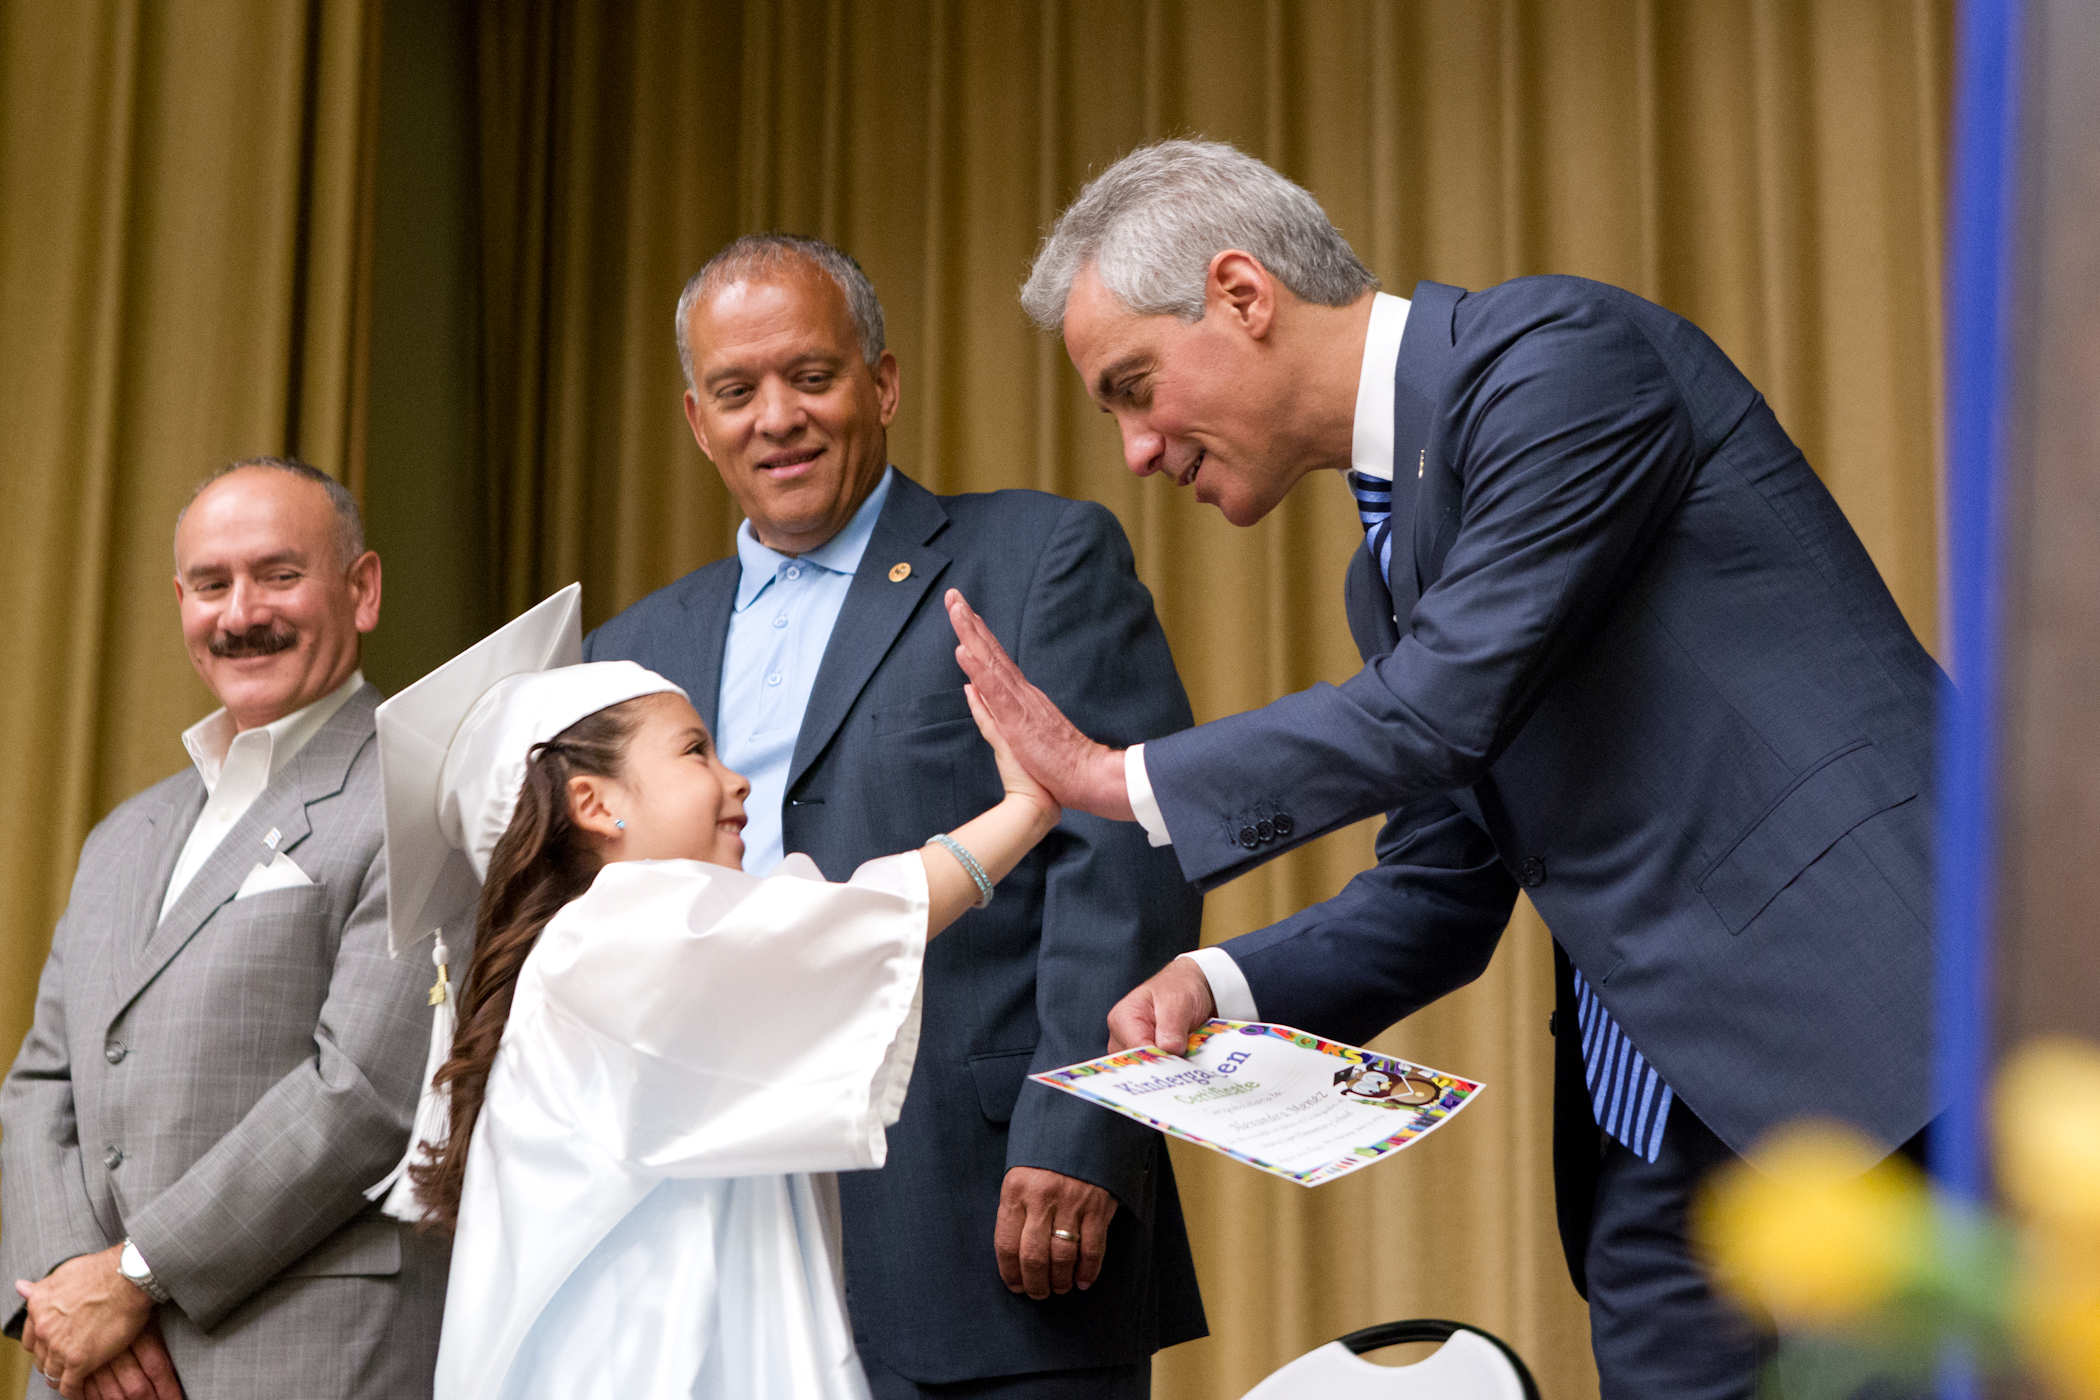 Mayor Emanuel congratulates kindergarten students during end-of-year celebration